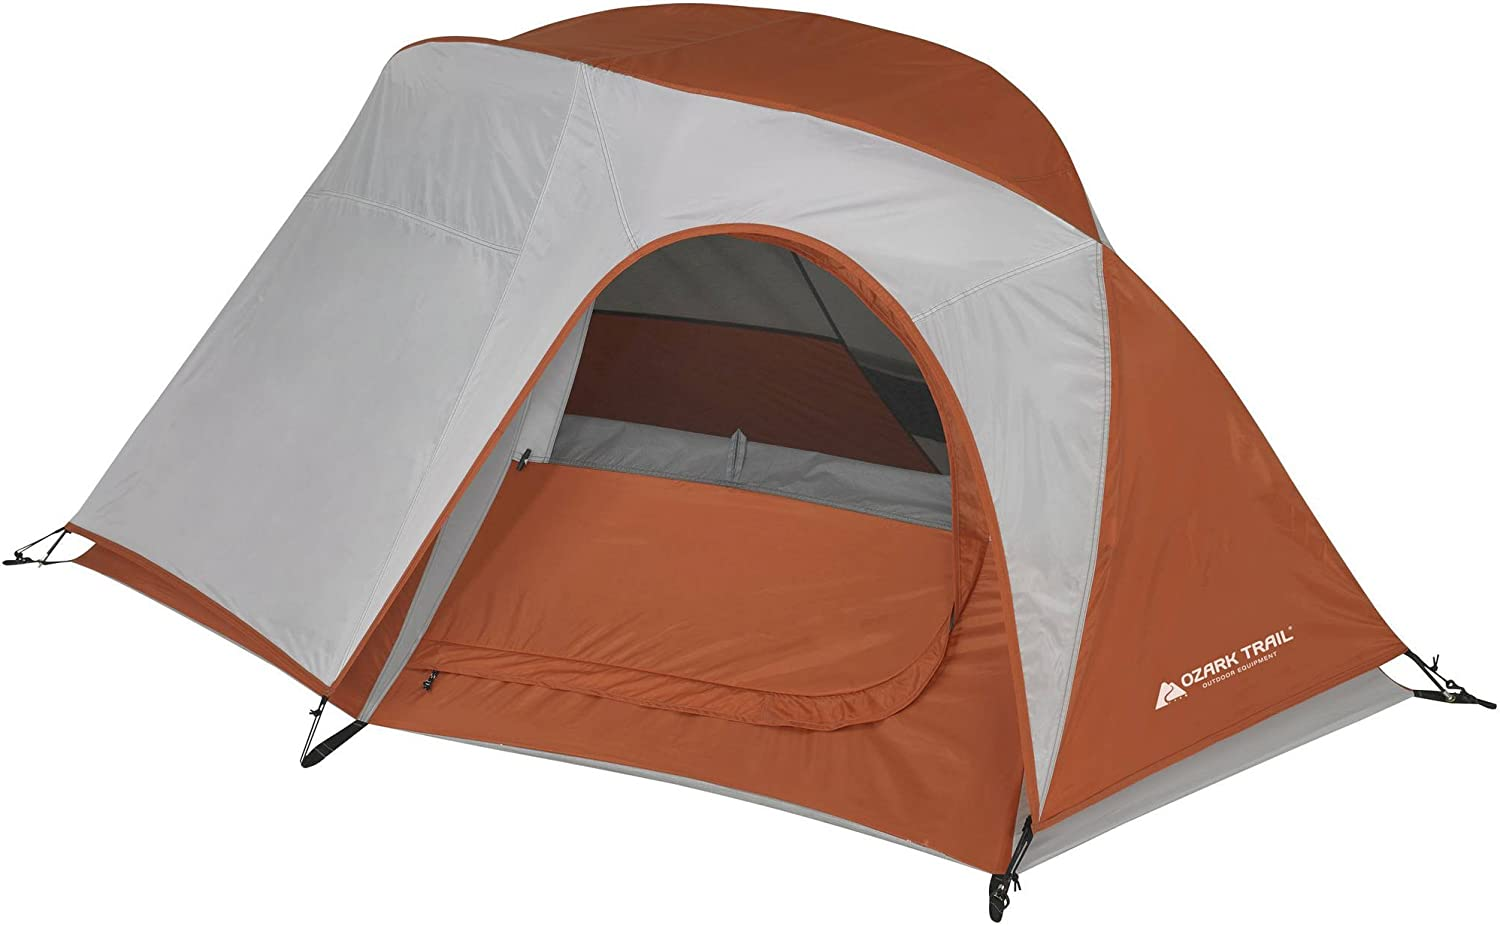 Ozark Trail 1 Person Backpacking Tent